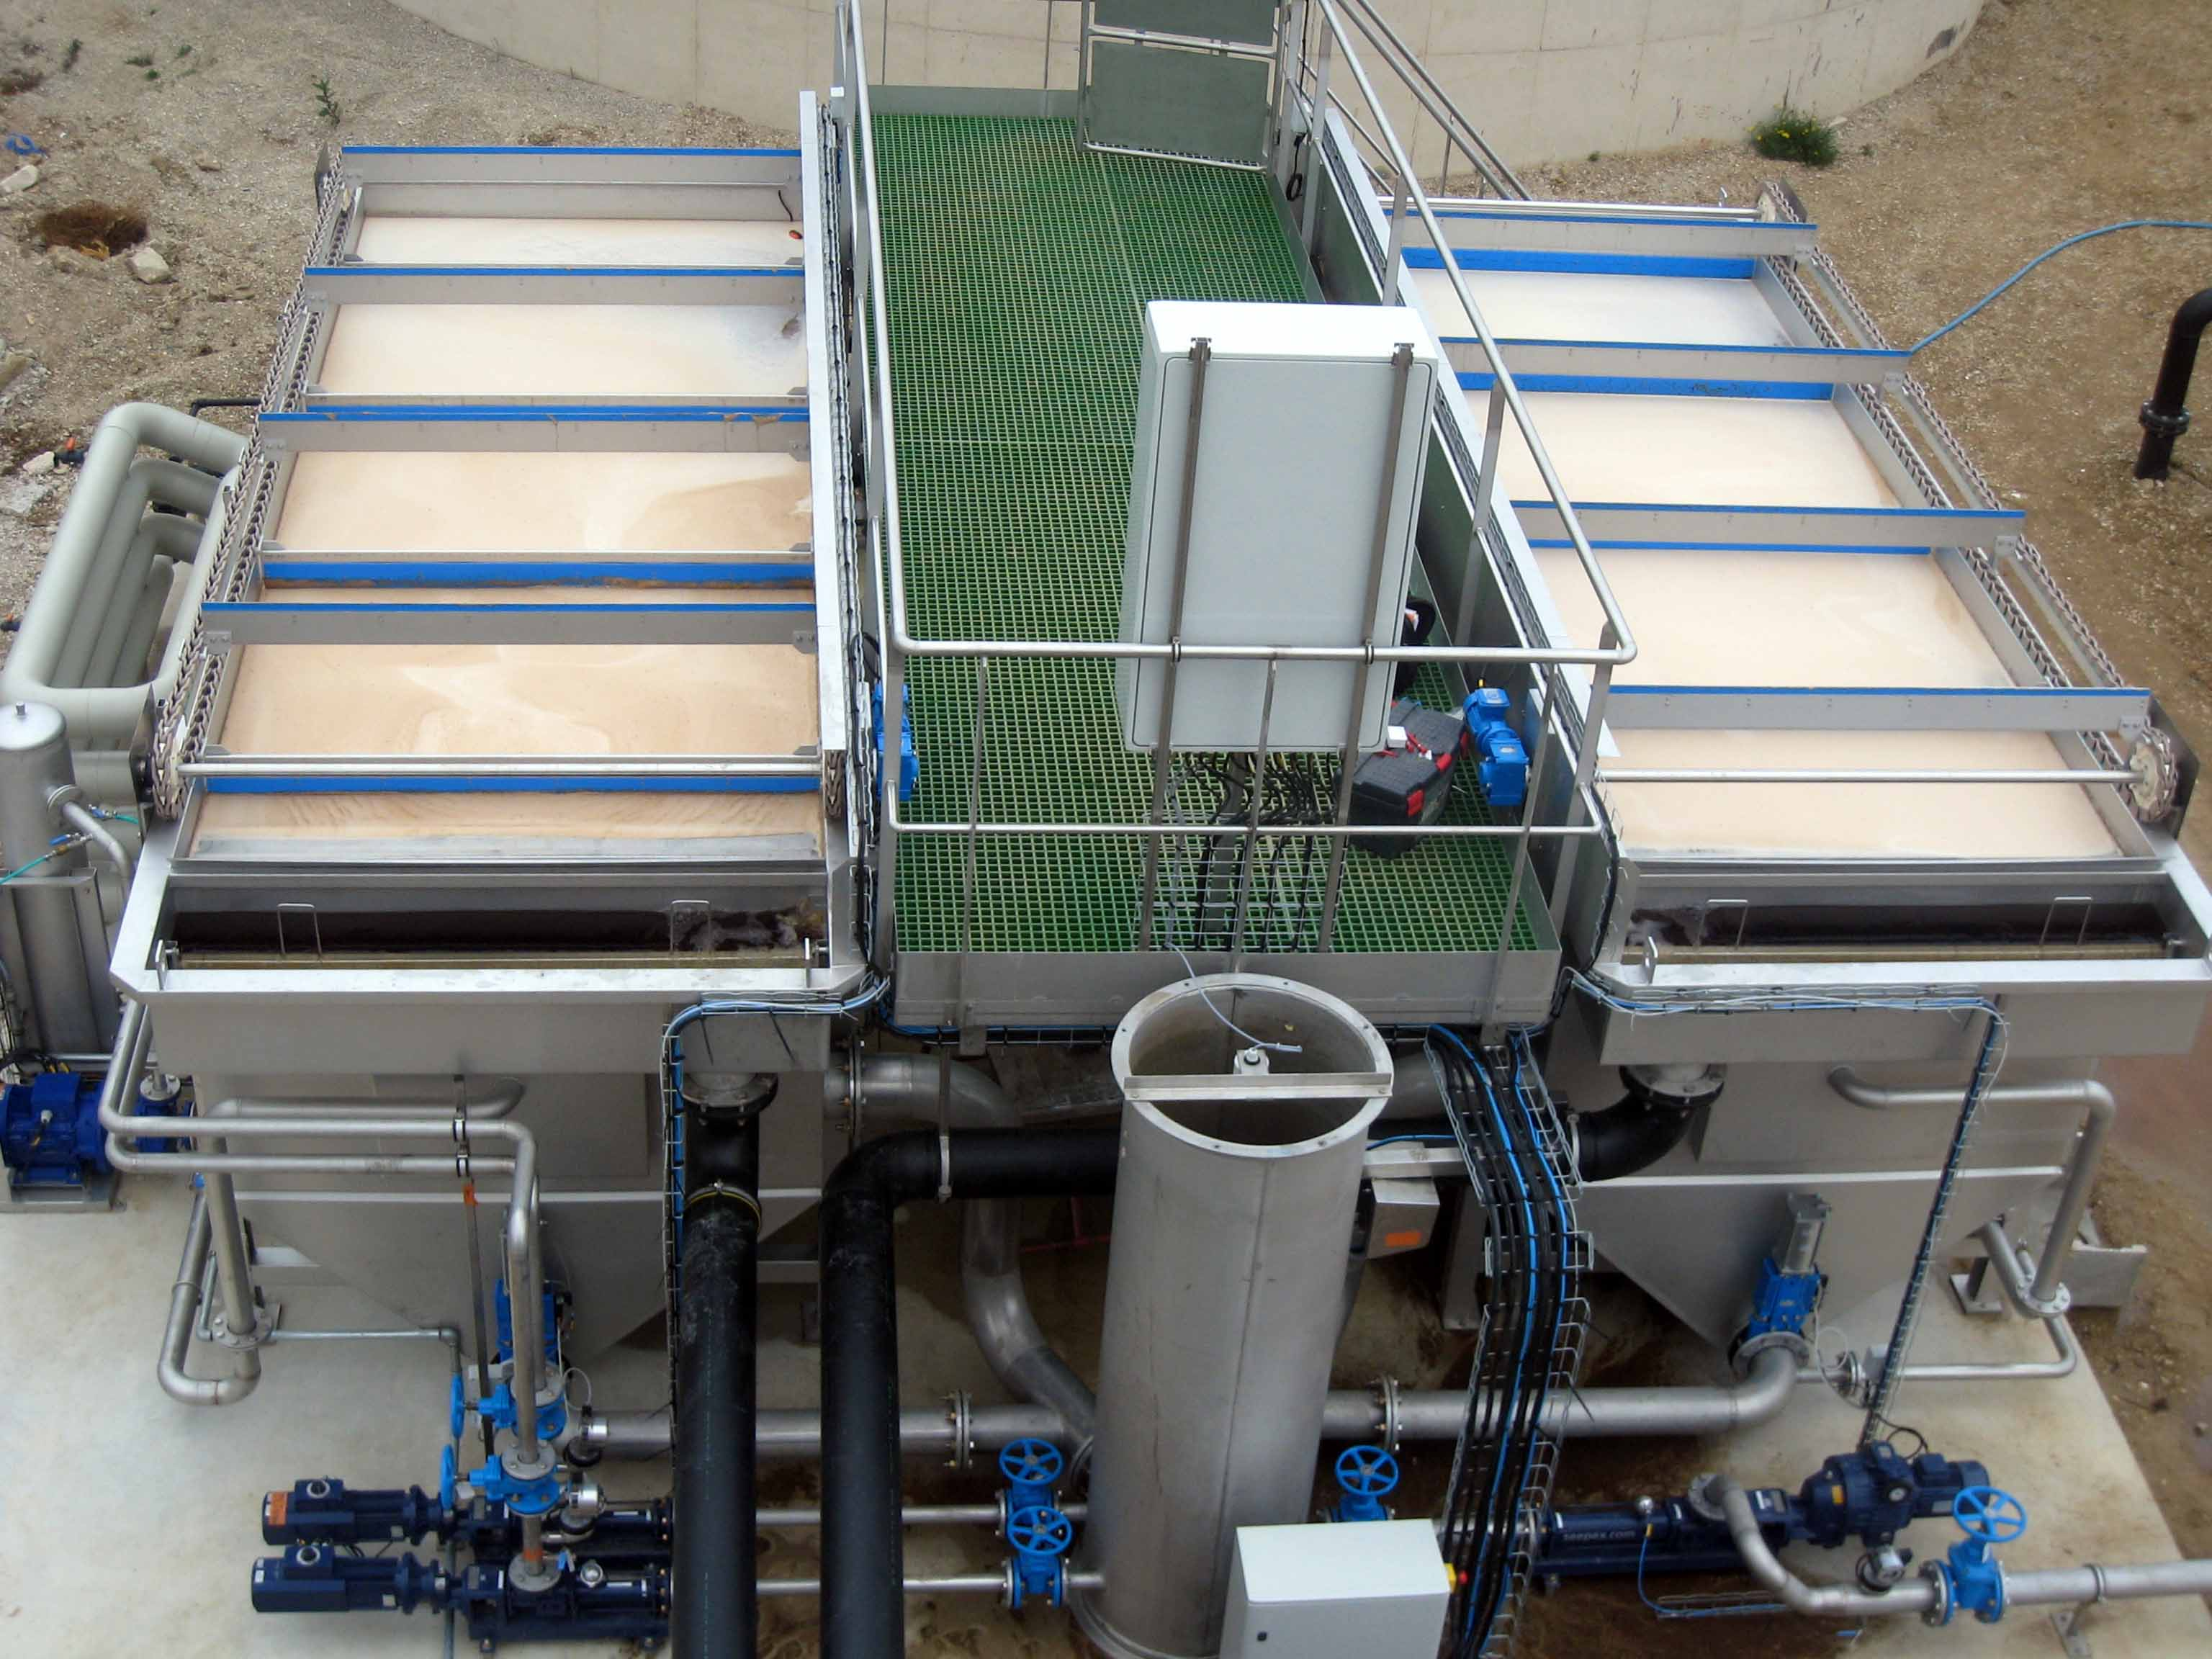 picture of a Dissolved Air Flotation (DAF) wastewater treatment system